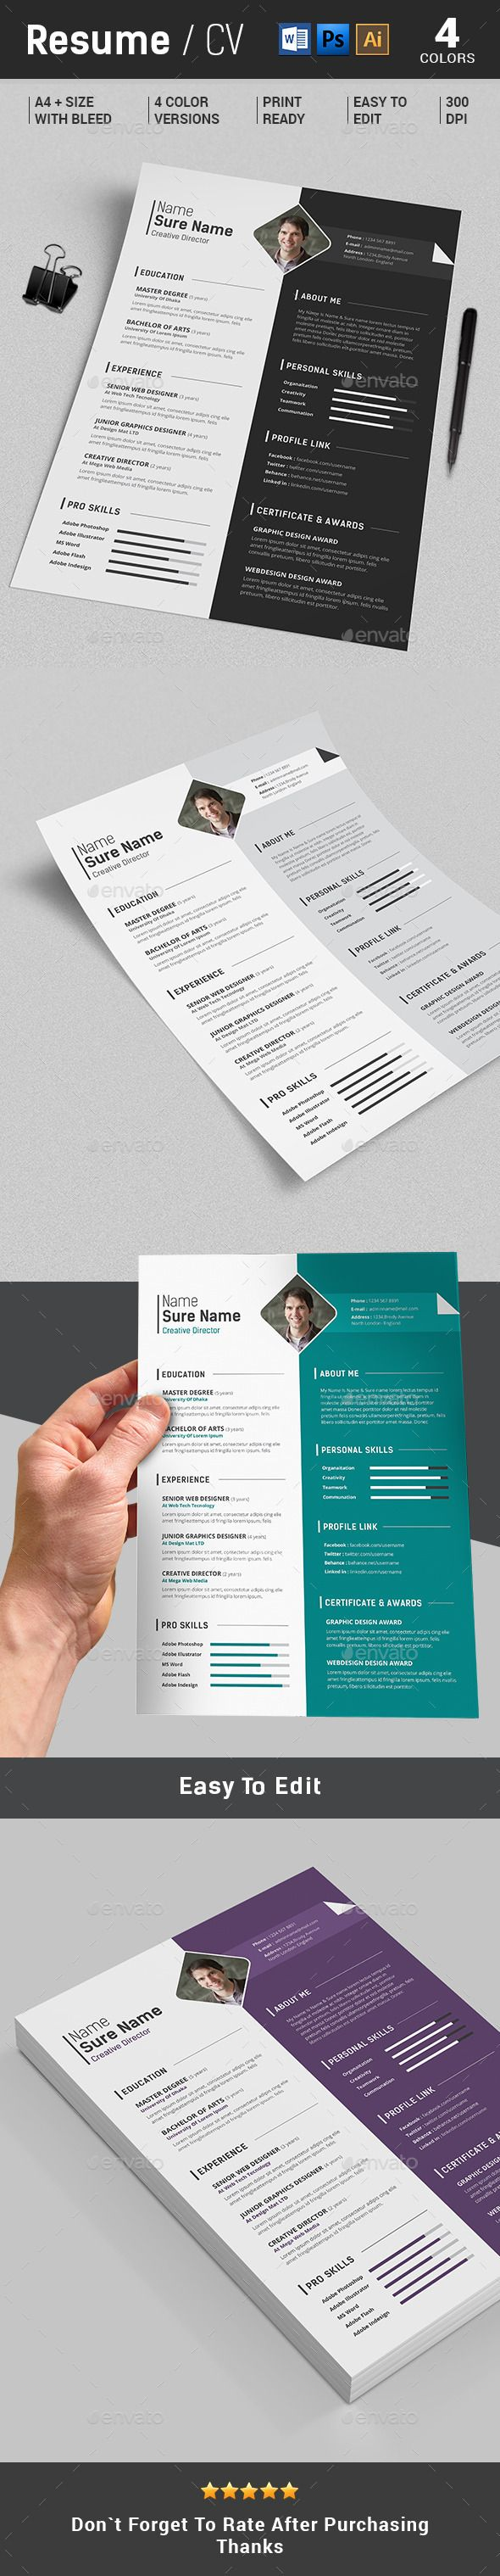 Professional Resume 135 best RESUME TEMPLATES images